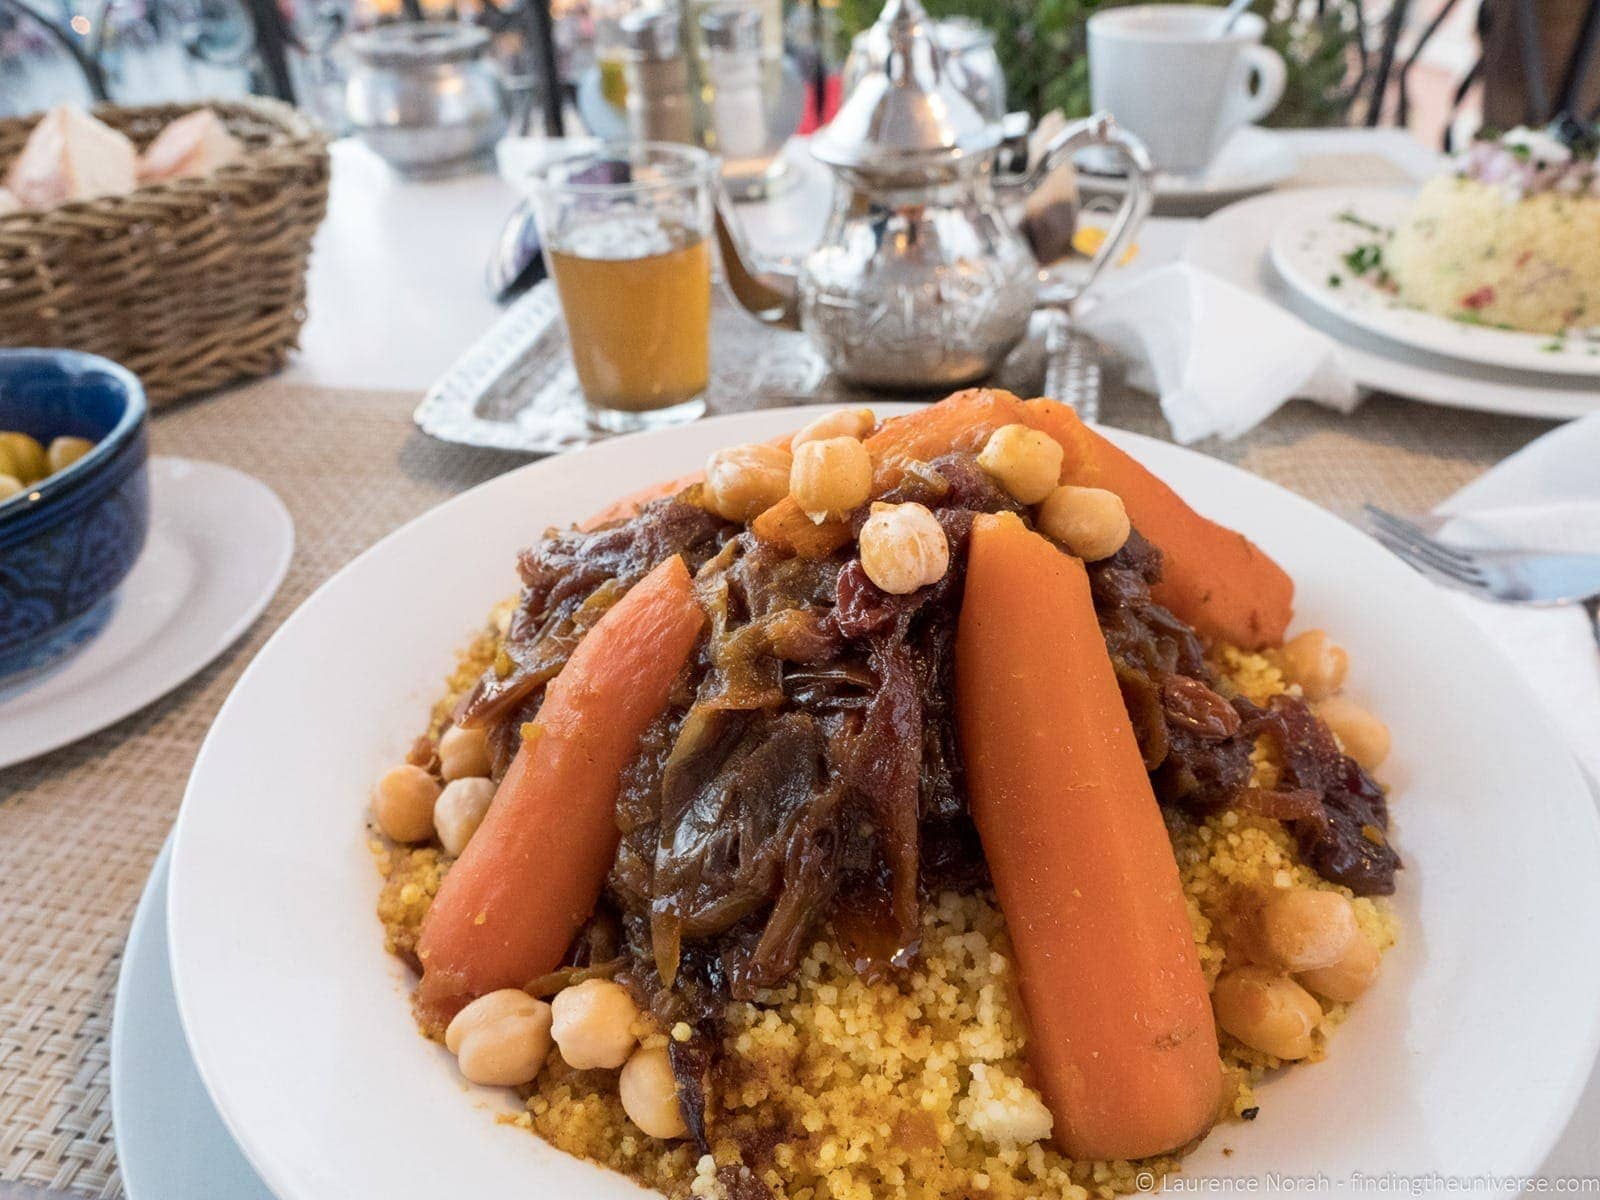 Couscous morrocco marrakech